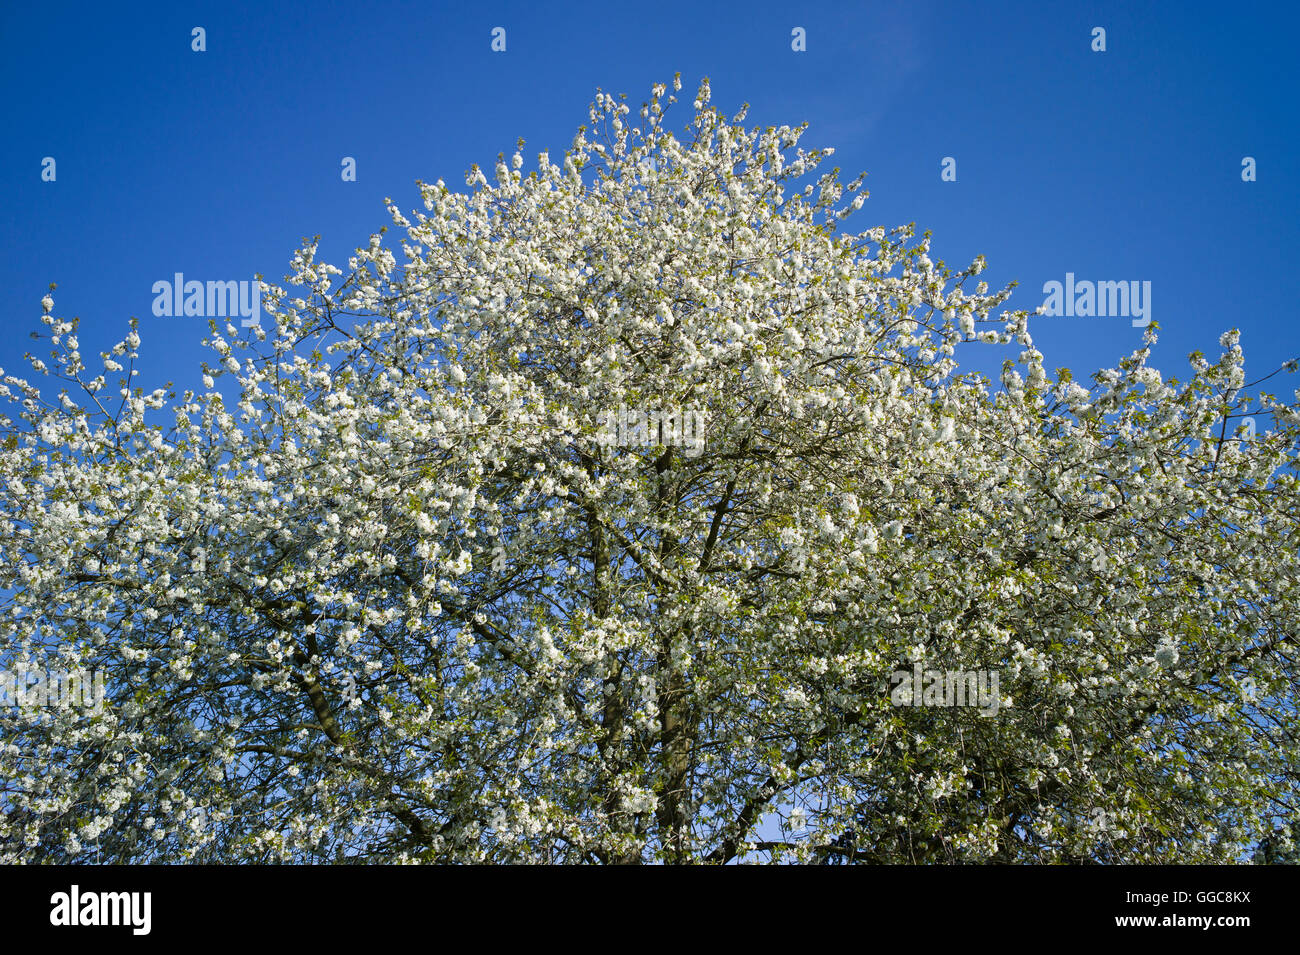 A wild cherry tree in full blossom in Spring - Stock Image